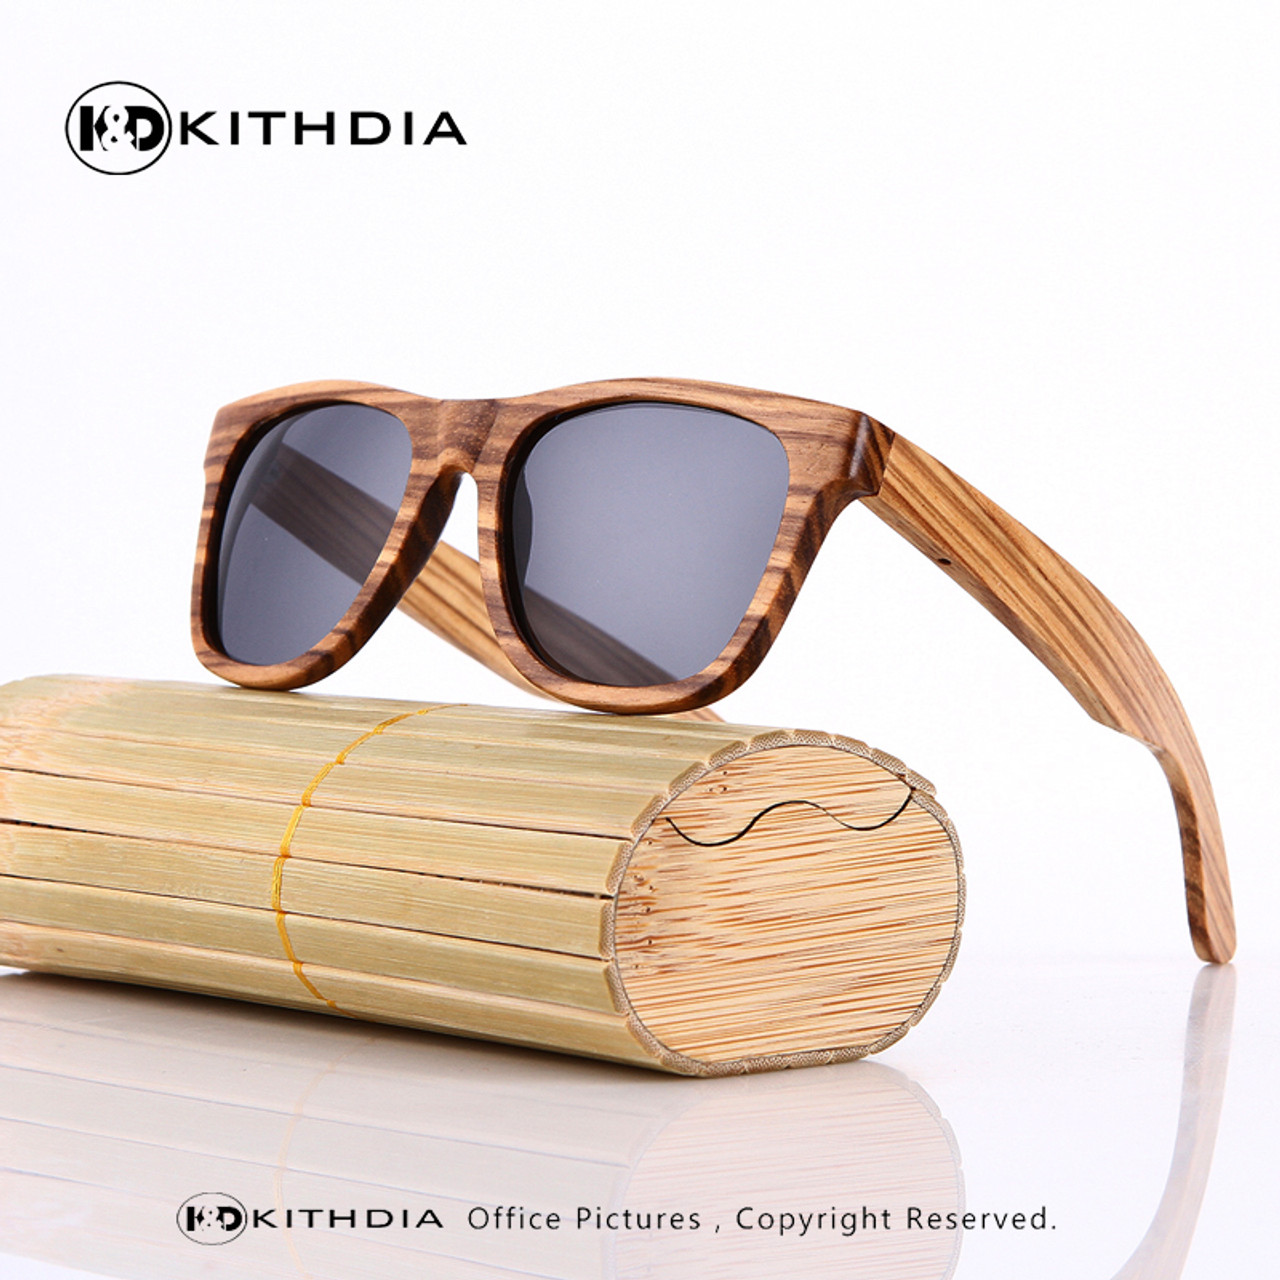 335dadf179e KITHDIA Wooden Sunglasses Polarized Men Bamboo Case Women Brand Designer Vintage  Wood Sun Glasses Oculos de sol masculino - OnshopDeals.Com